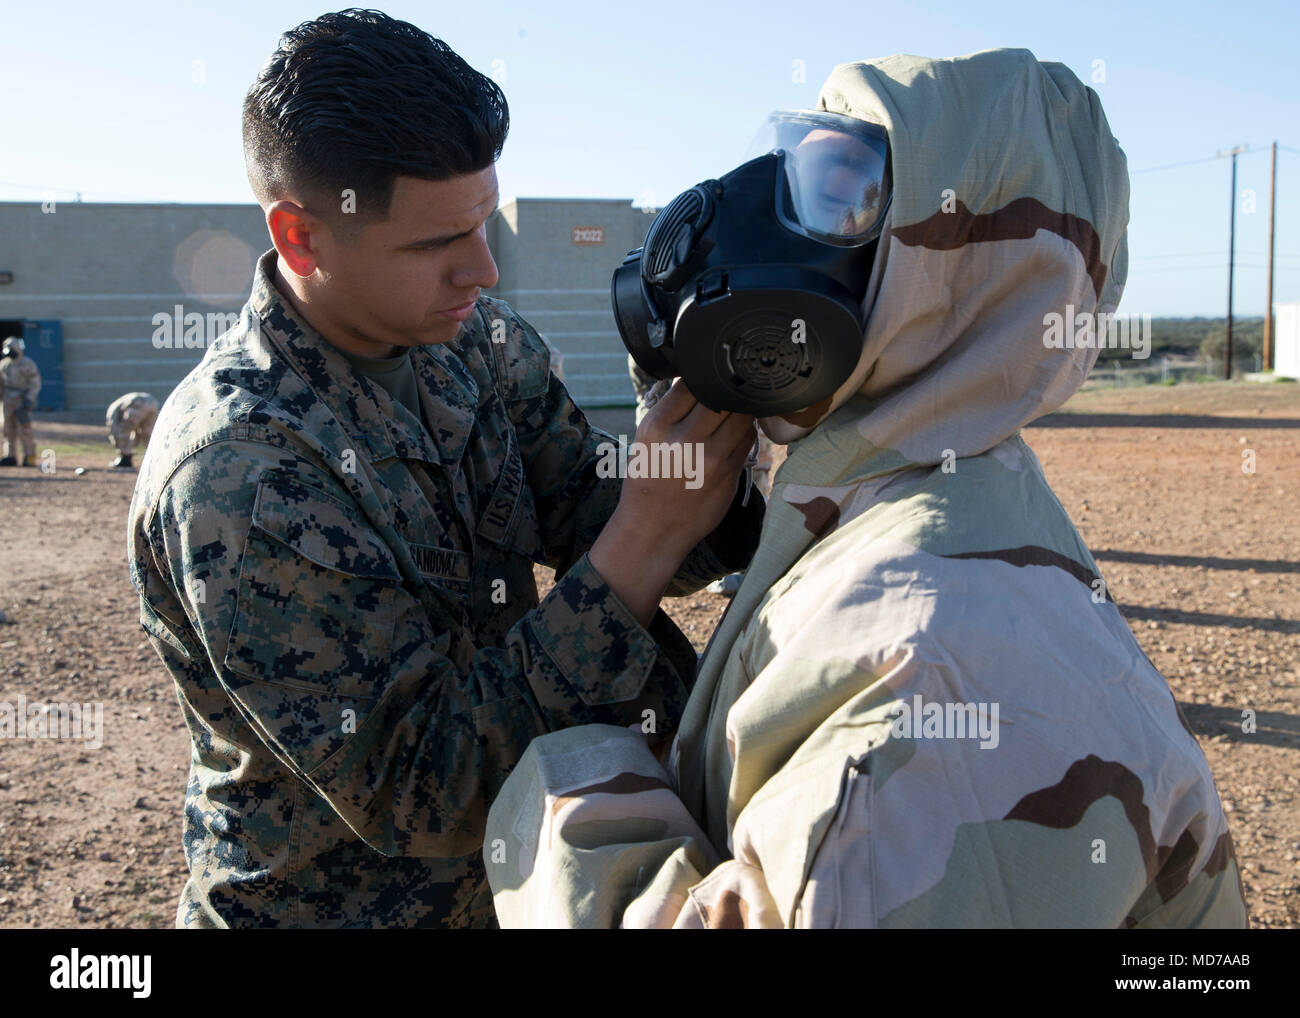 Pfc. Luis Sandoval, a cyber network operator with 3rd Marine Aircraft Wing, helps a Marine don a Mission Oriented Protective Posture suit during the reconnaissance, surveillance and decontamination course at Marine Corps Air Station Miramar, Calif., March 25. The course is designed to train unit personnel in the procedures and equipment used in accomplishing RS&D operations in a chemical, biological, radiological or nuclear environment. (U.S. Marine Corps photo by Lance Cpl. Clare J. McIntire) - Stock Image